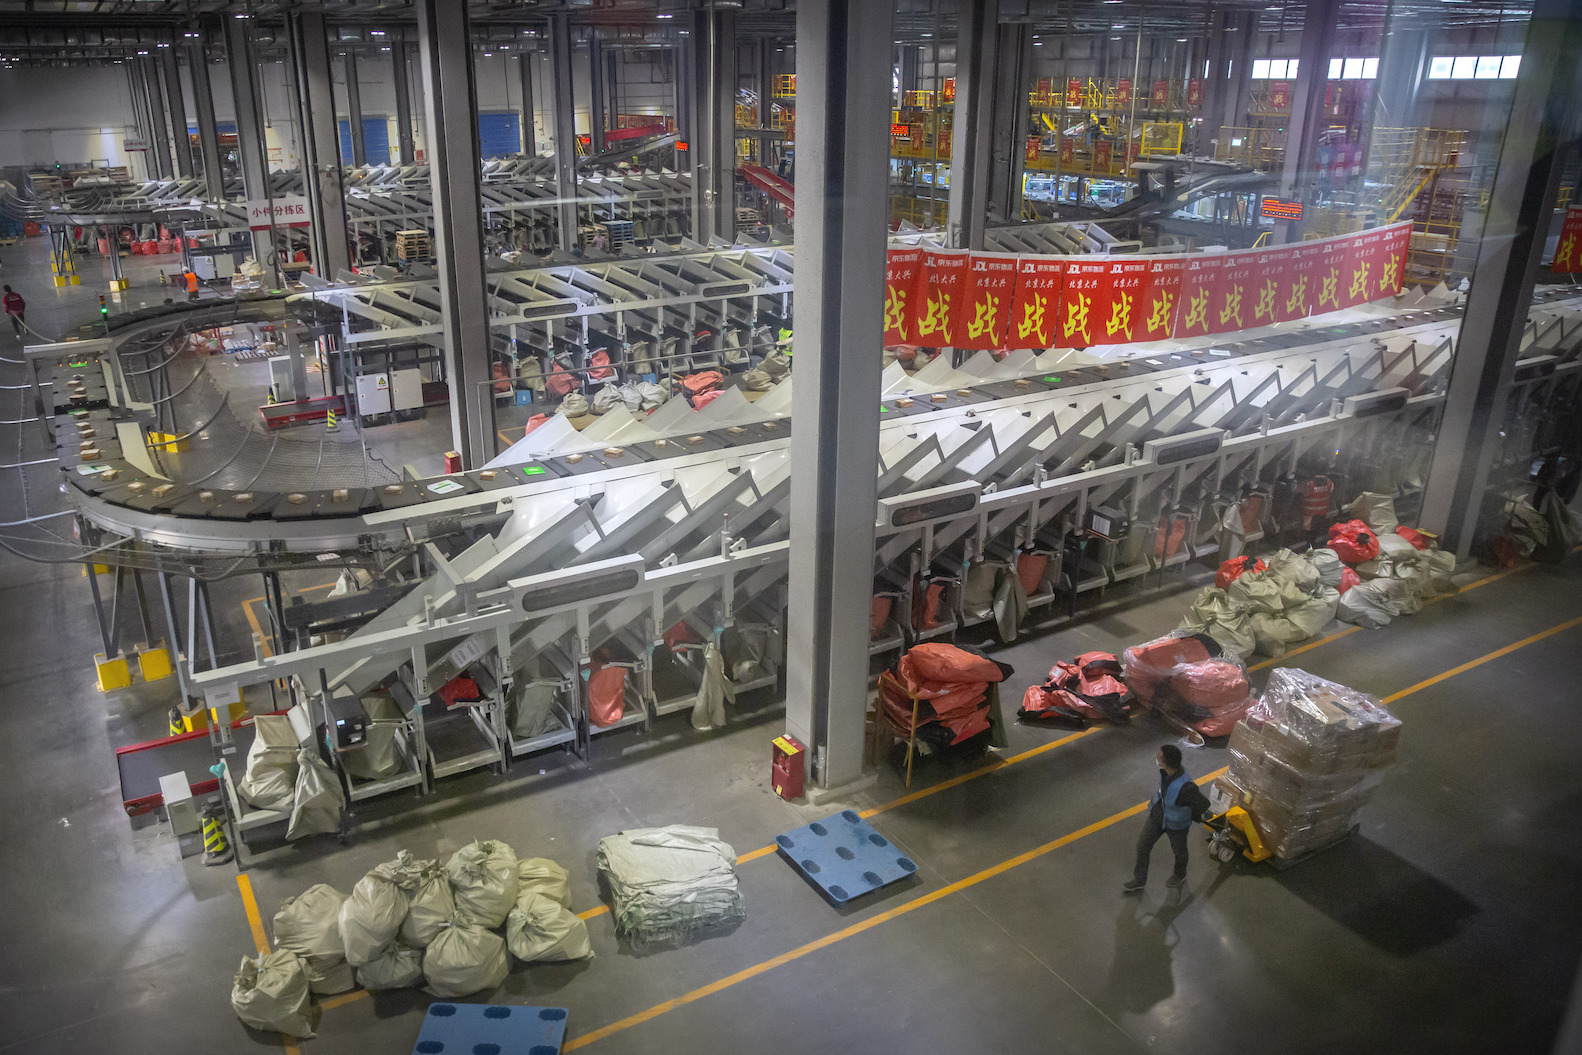 An employee walks past an automated parcel sorting machine at a warehouse for online retailer JD.com in Beijing, Wednesday, Nov. 11, 2020.